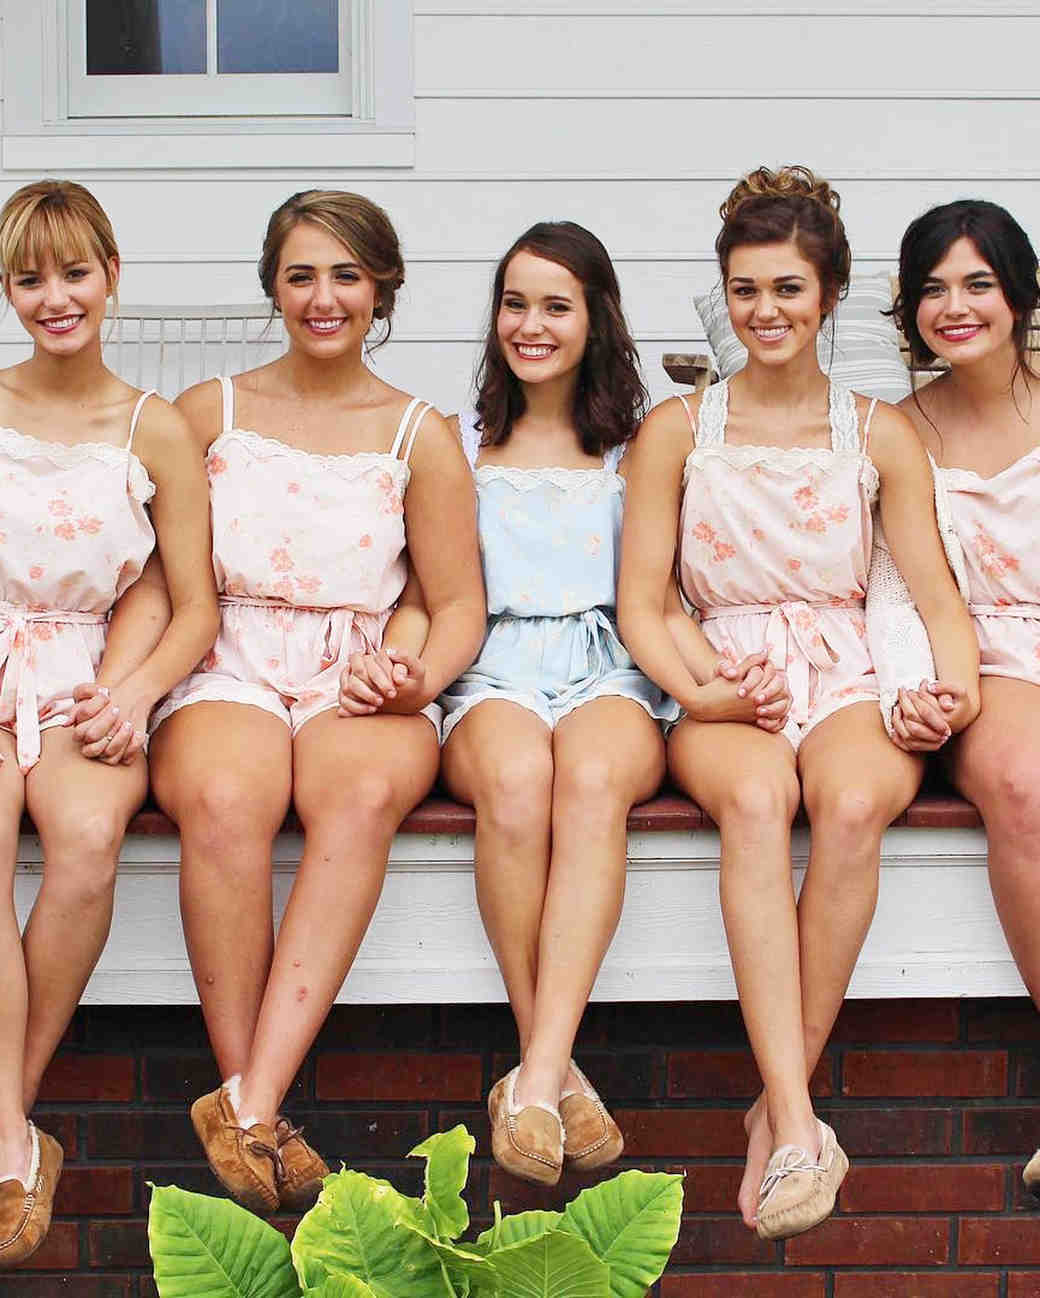 Bridal party rompers